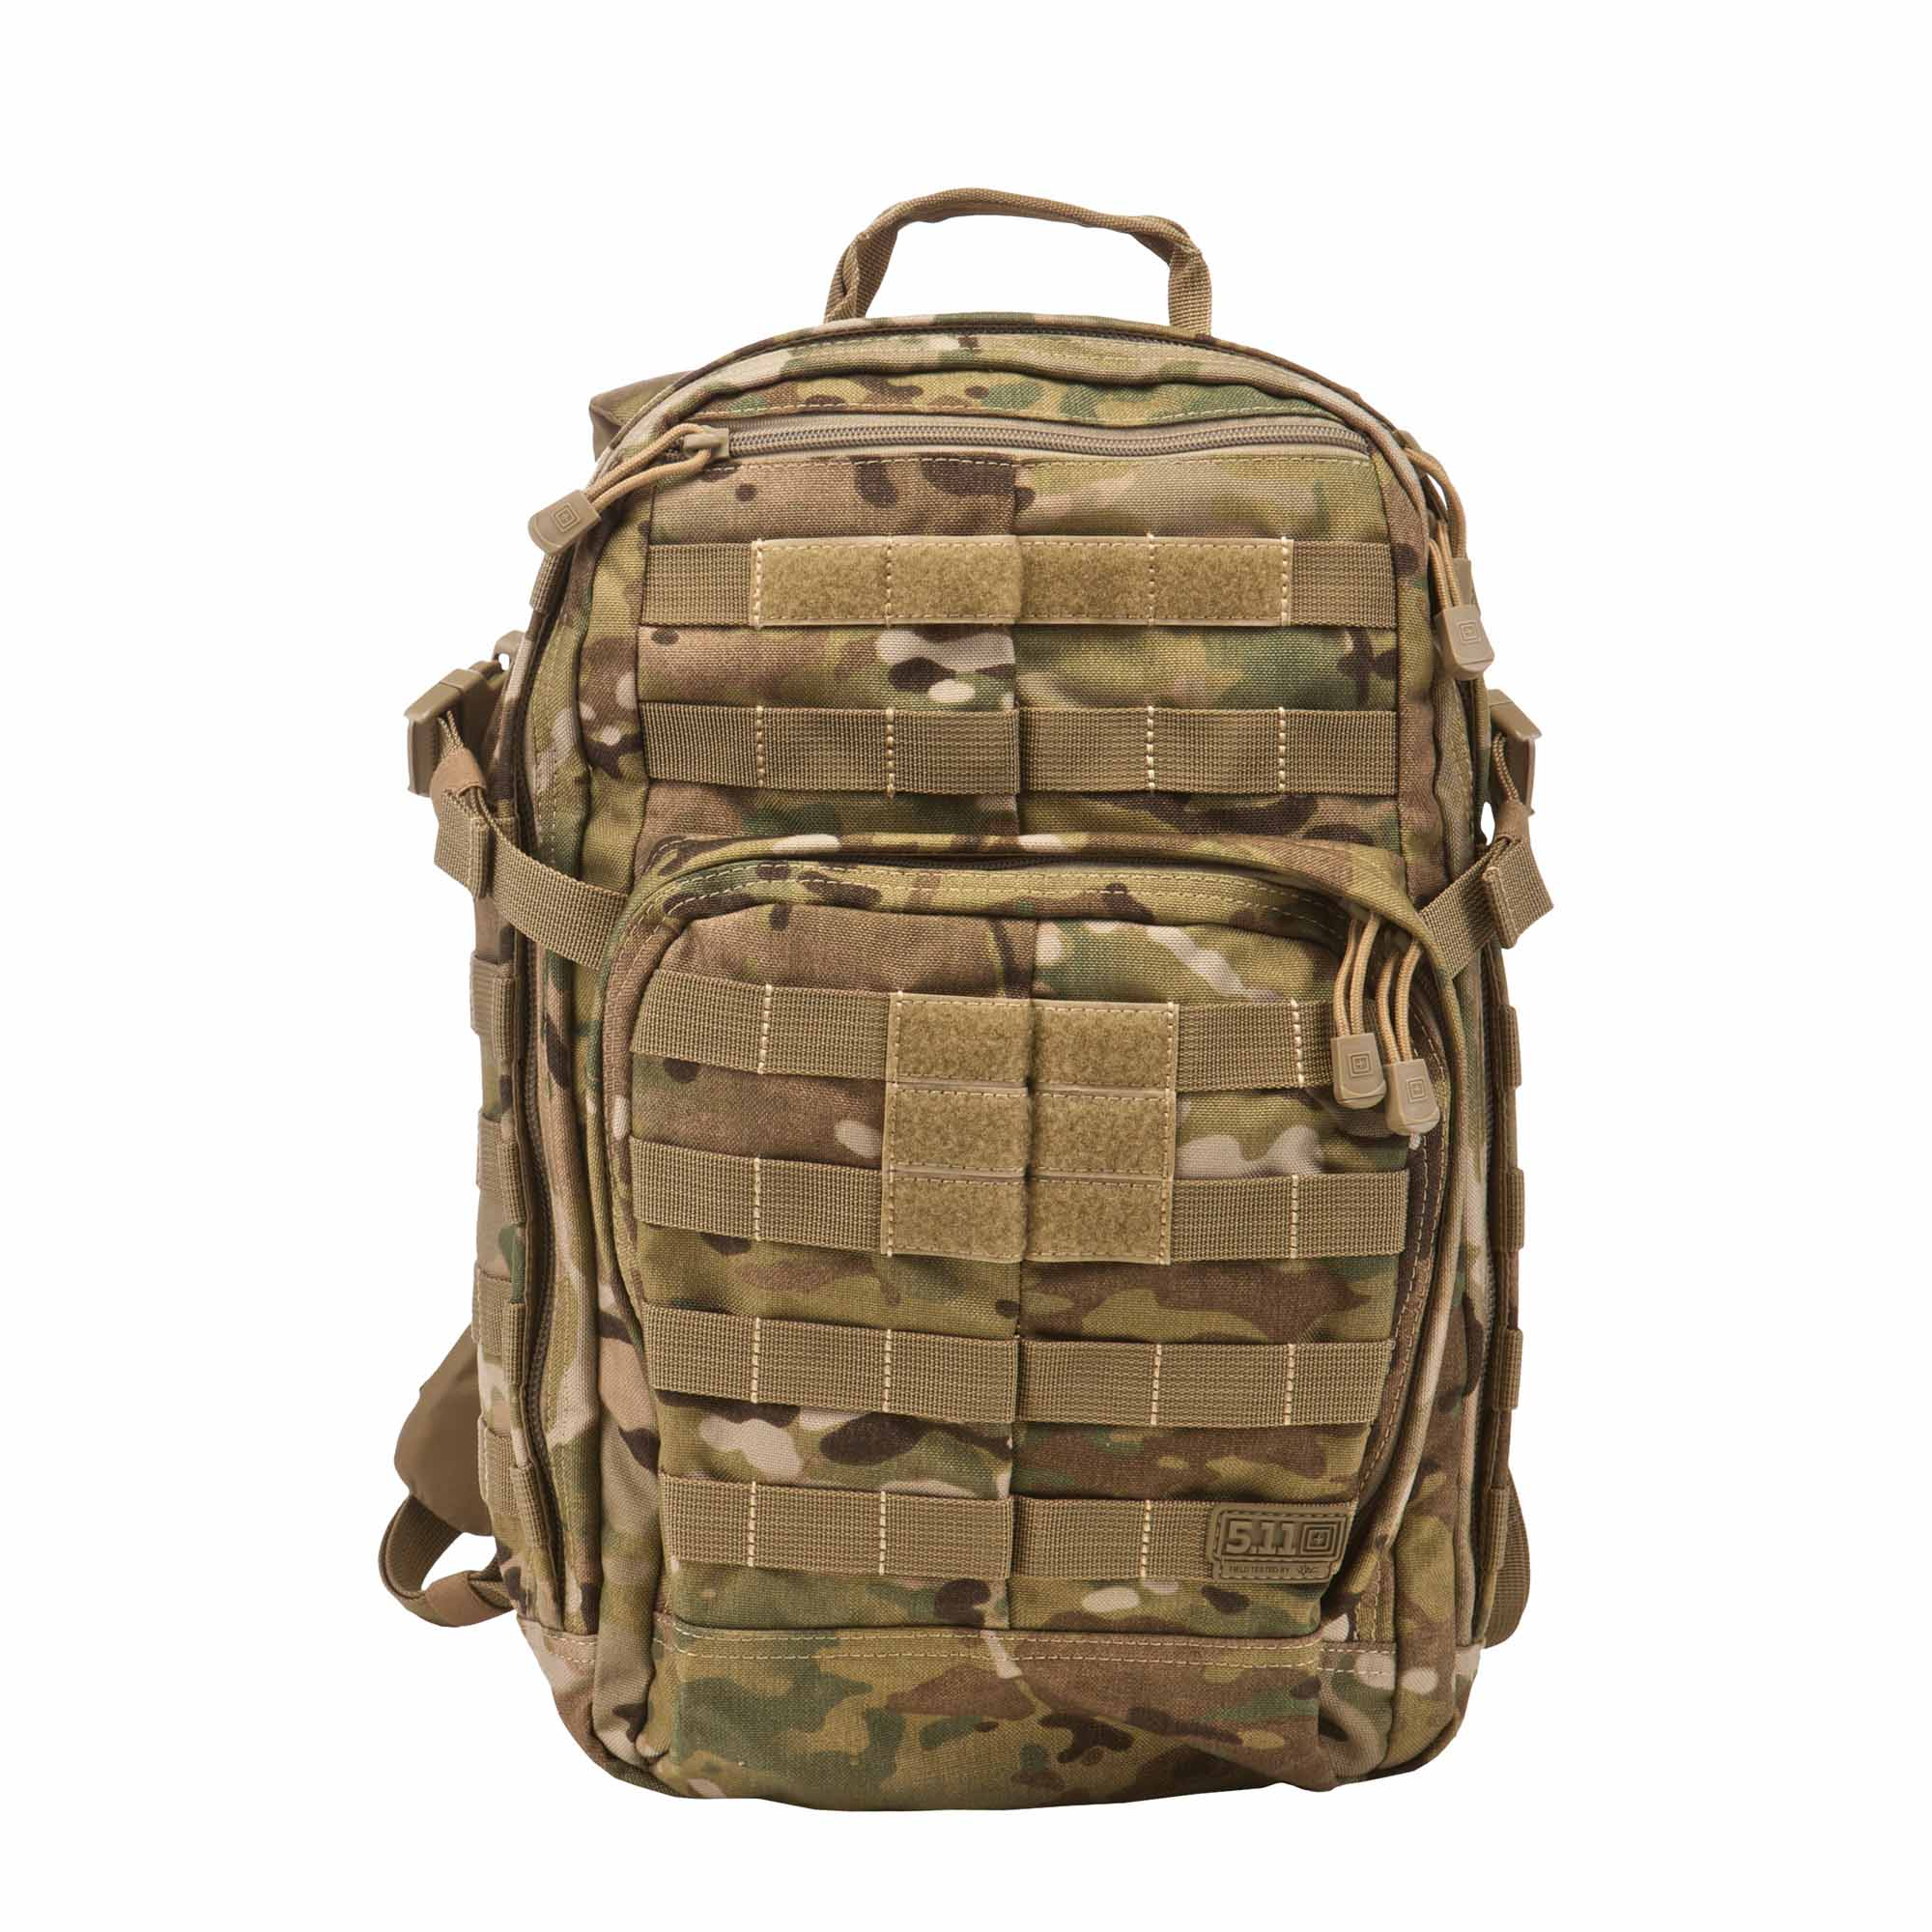 6dd1899b1536 5.11 Tactical RUSH 24 Tactical Backpack - 5.11 Tactical